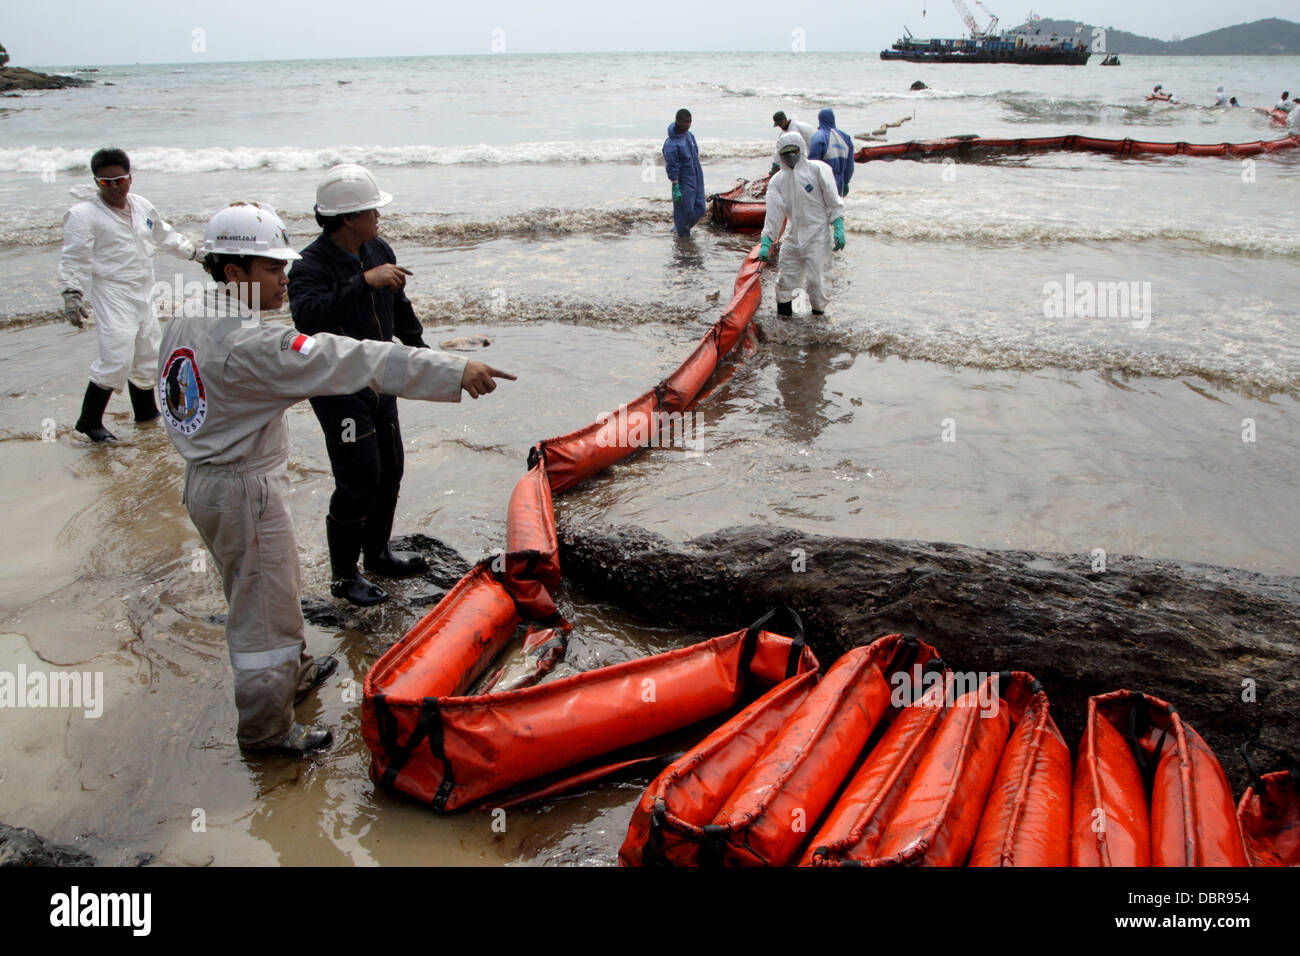 Samed Island, Thailand. 2nd August, 2013.  Staff from Thai oil company PTT clean up an oil spill which washed up - Stock Image